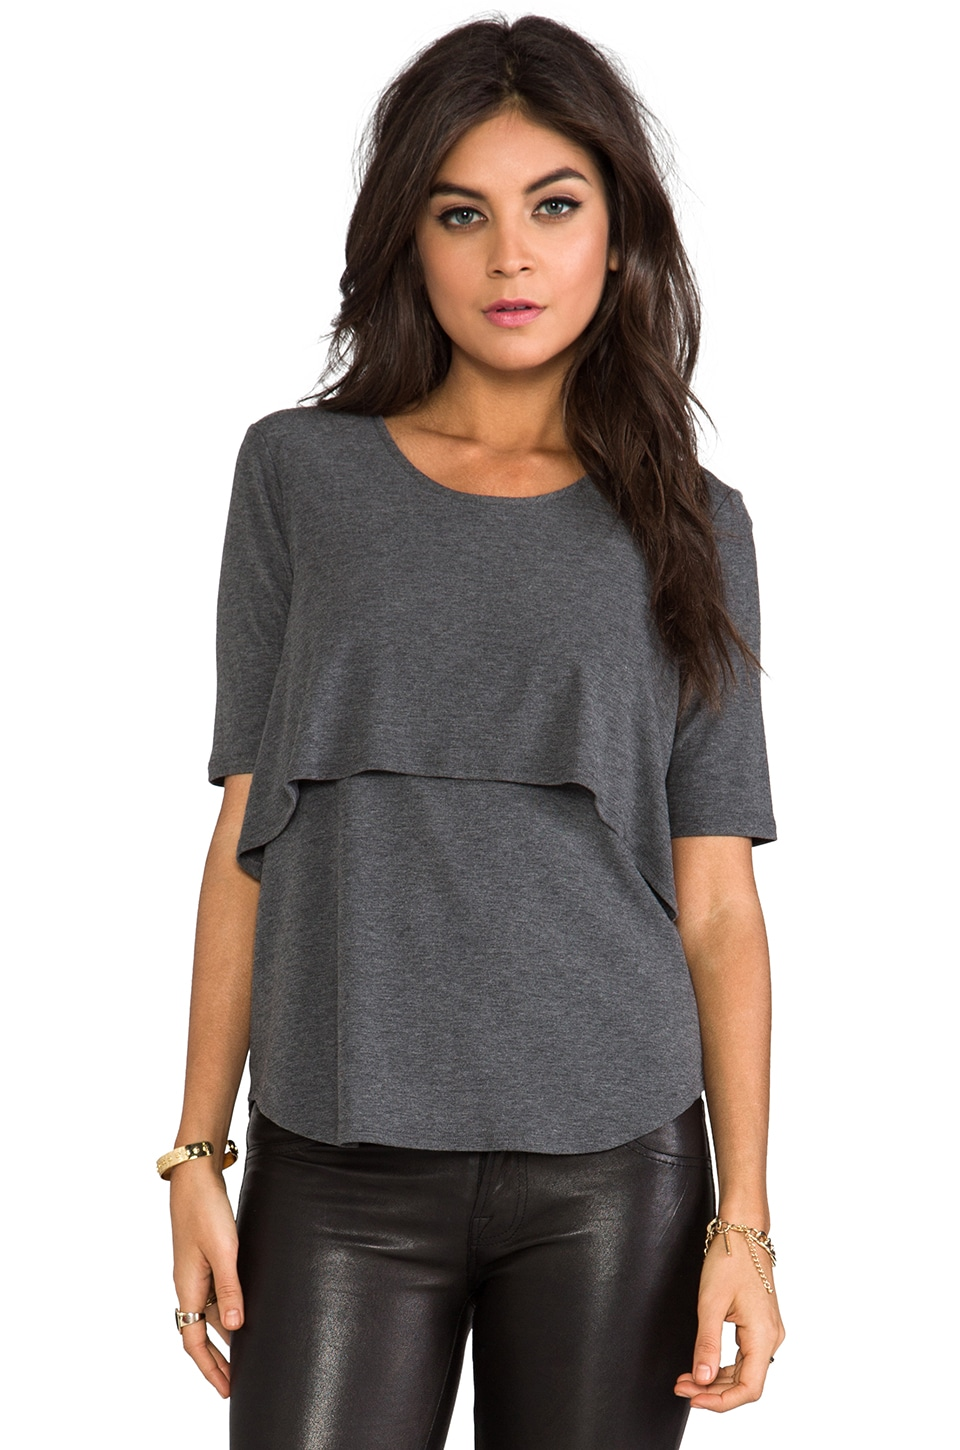 Theory Layered Tee in Charcoal Melange